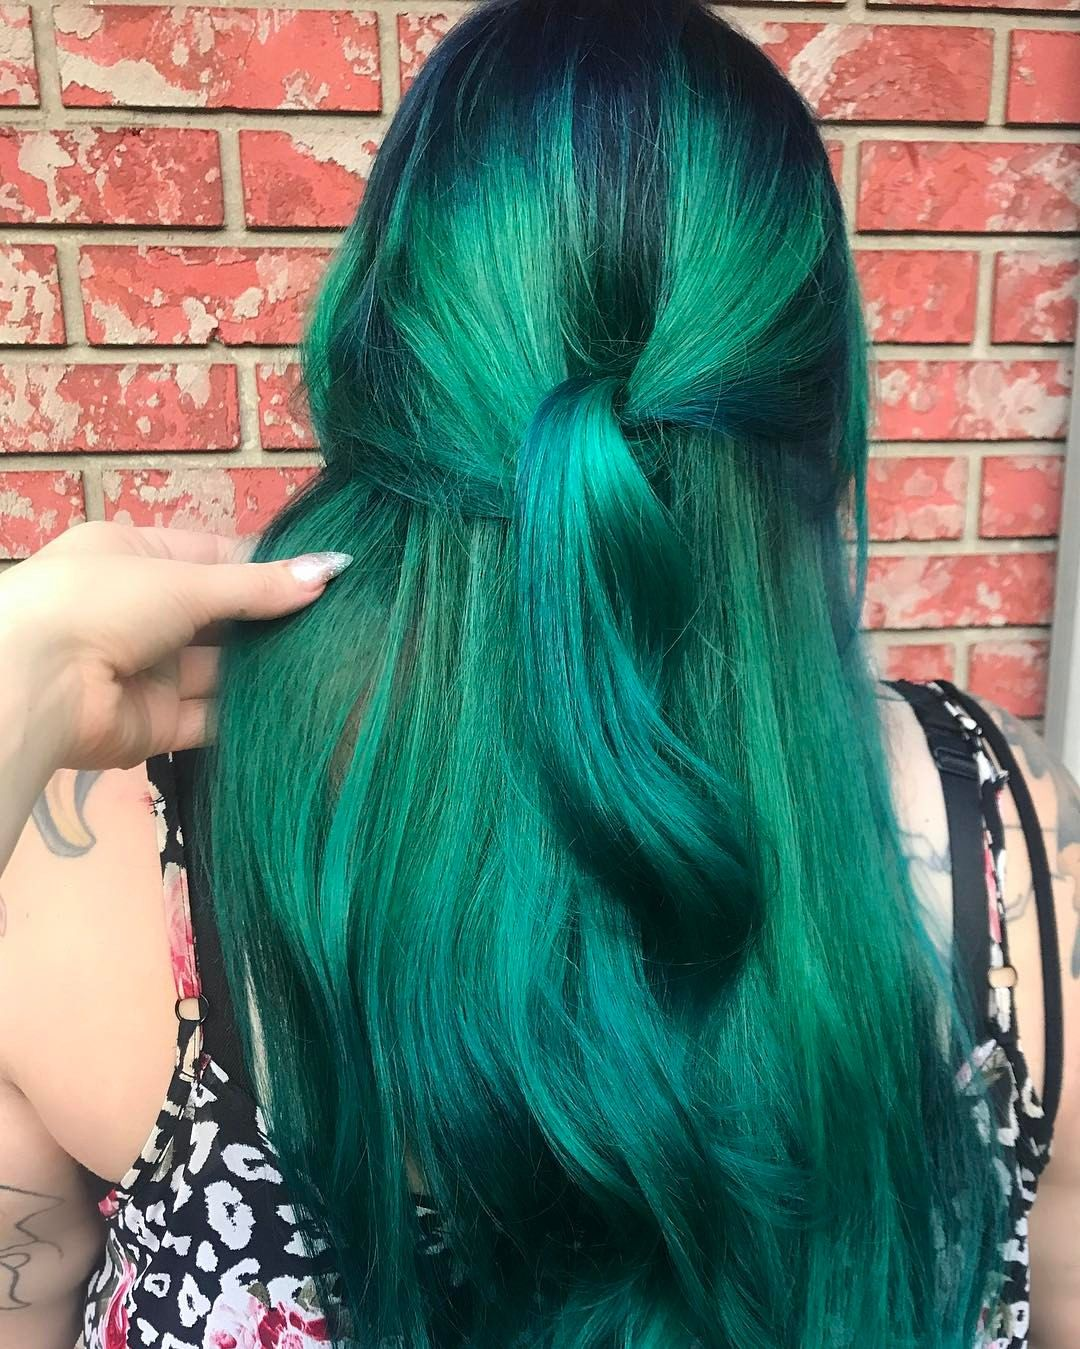 K likes comments pulp riot hair color pulpriothair on